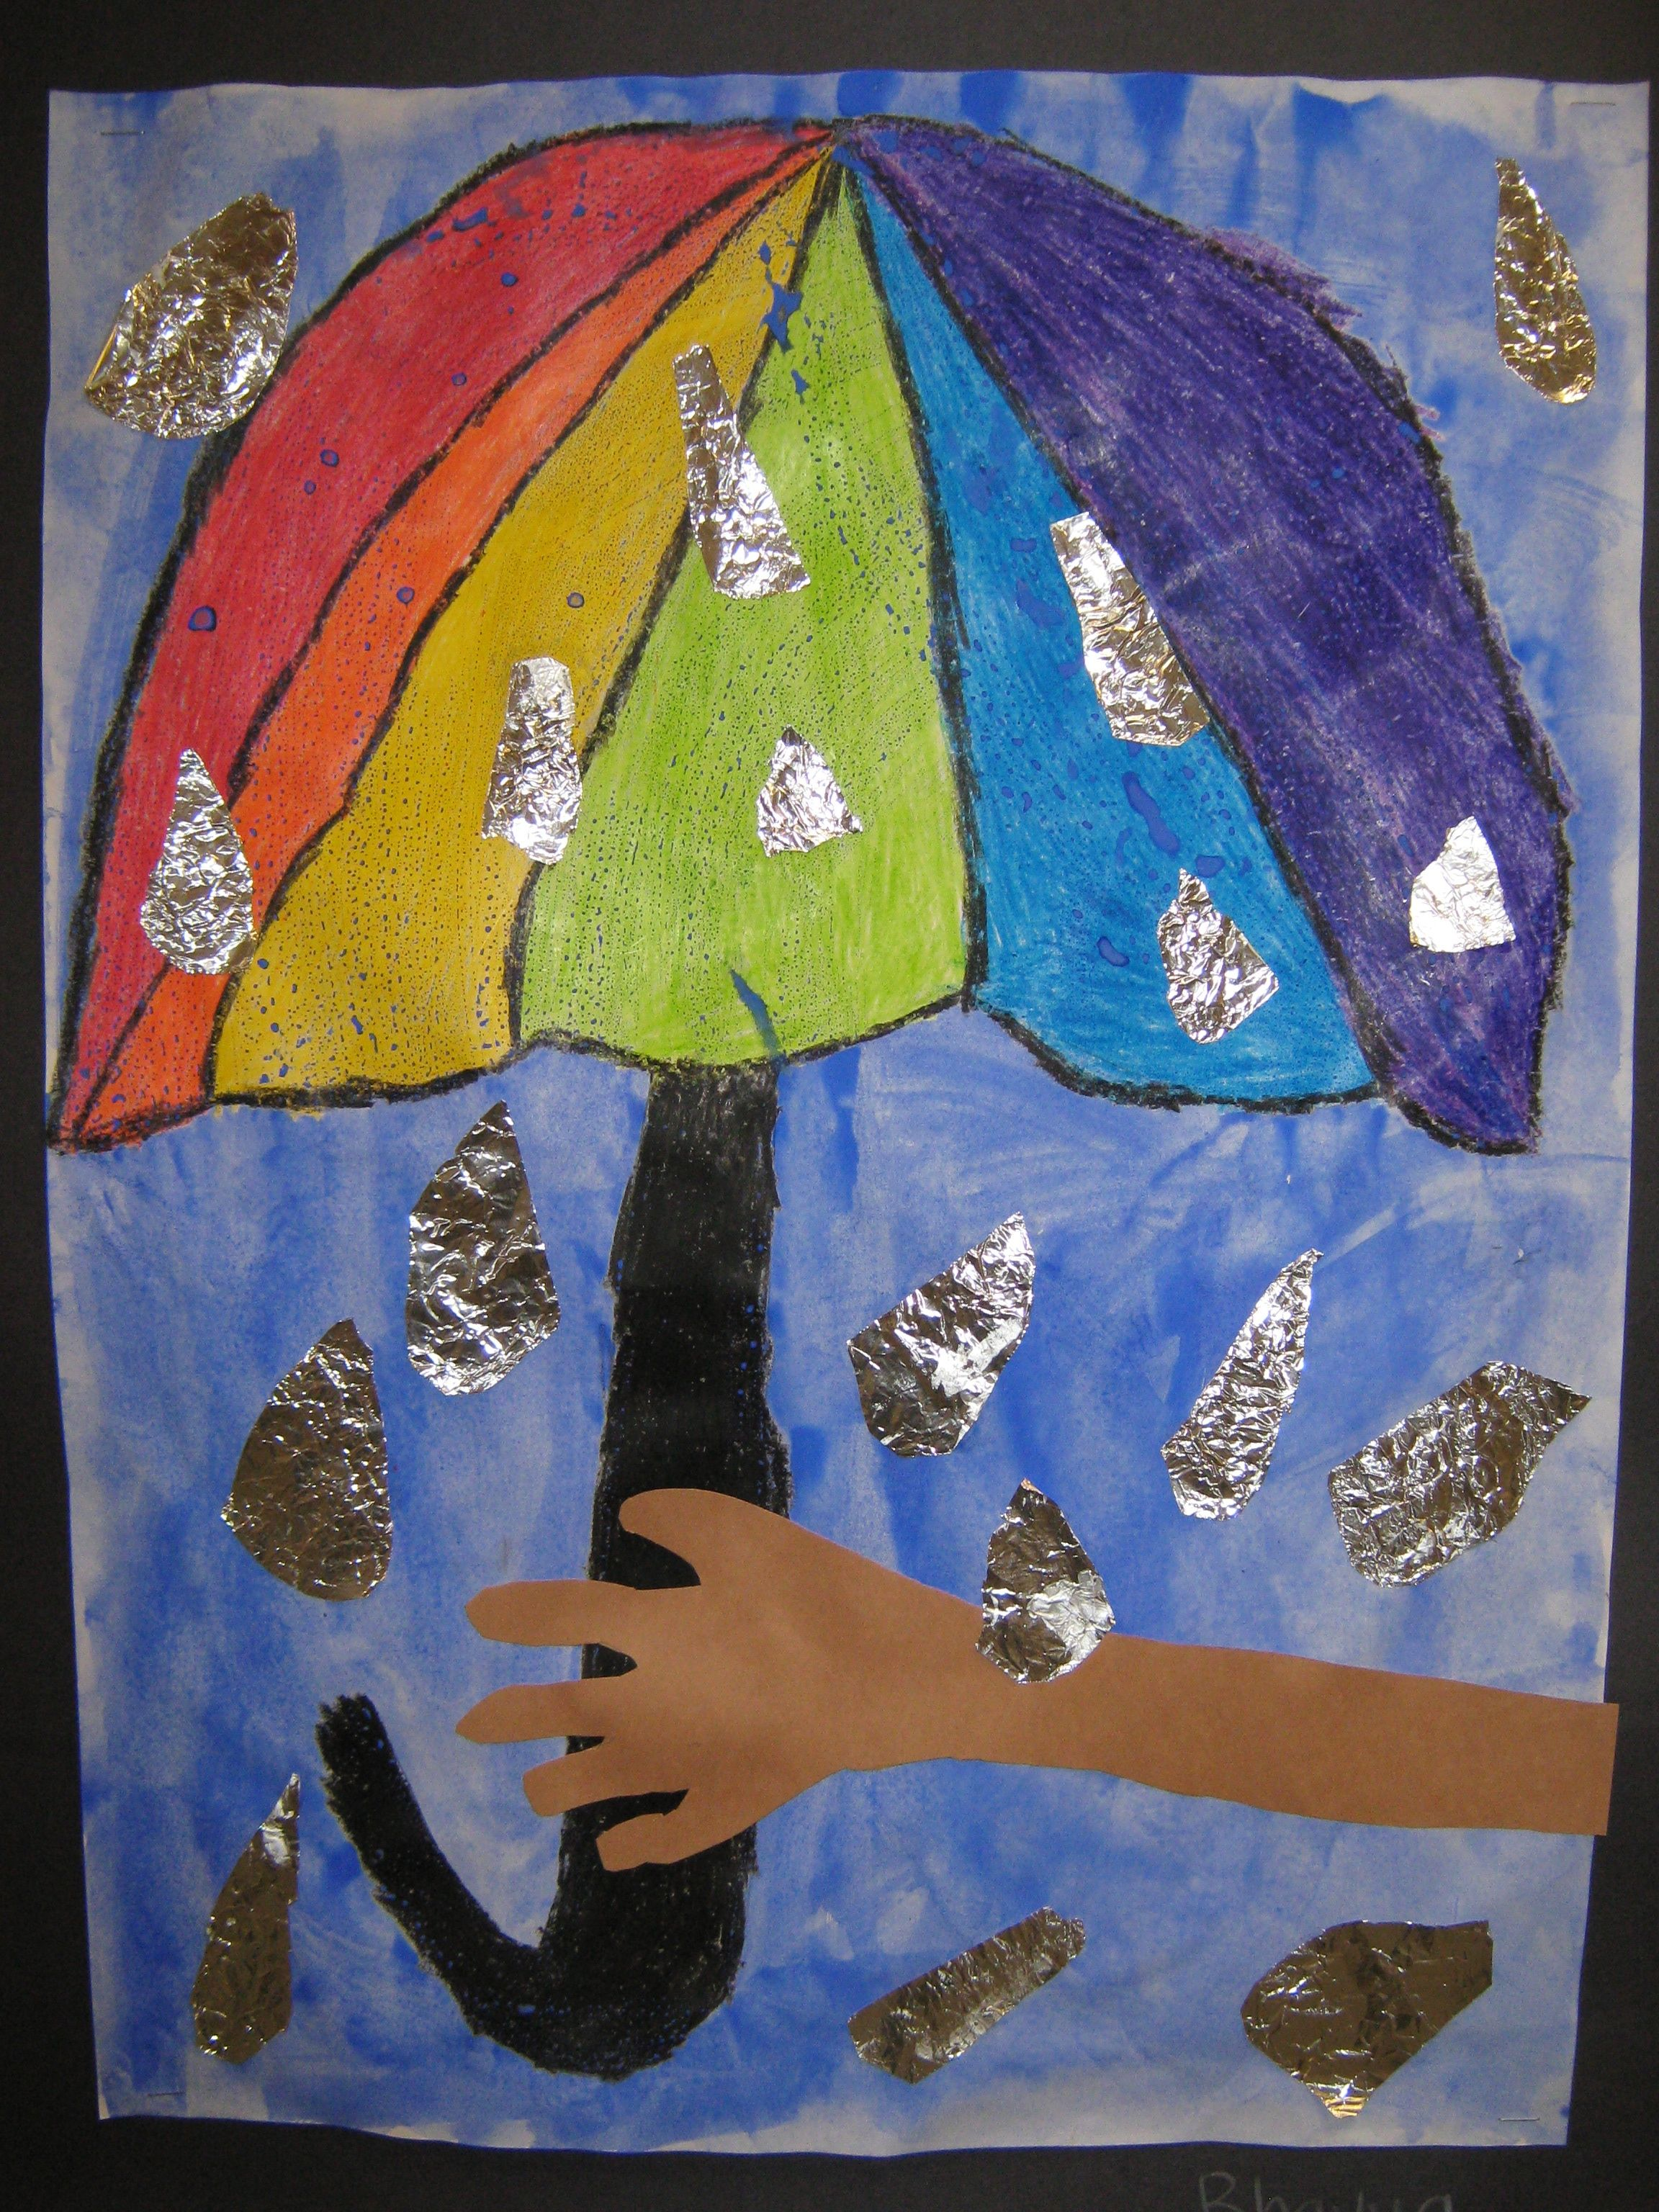 3a7d0856ee3aed068cf85439f15d1990 Kindergarten And First Grade Art Projects on using shapes, end school, for kindergarten, fall scarecrow, one day, cutest beginning year, eric carle,